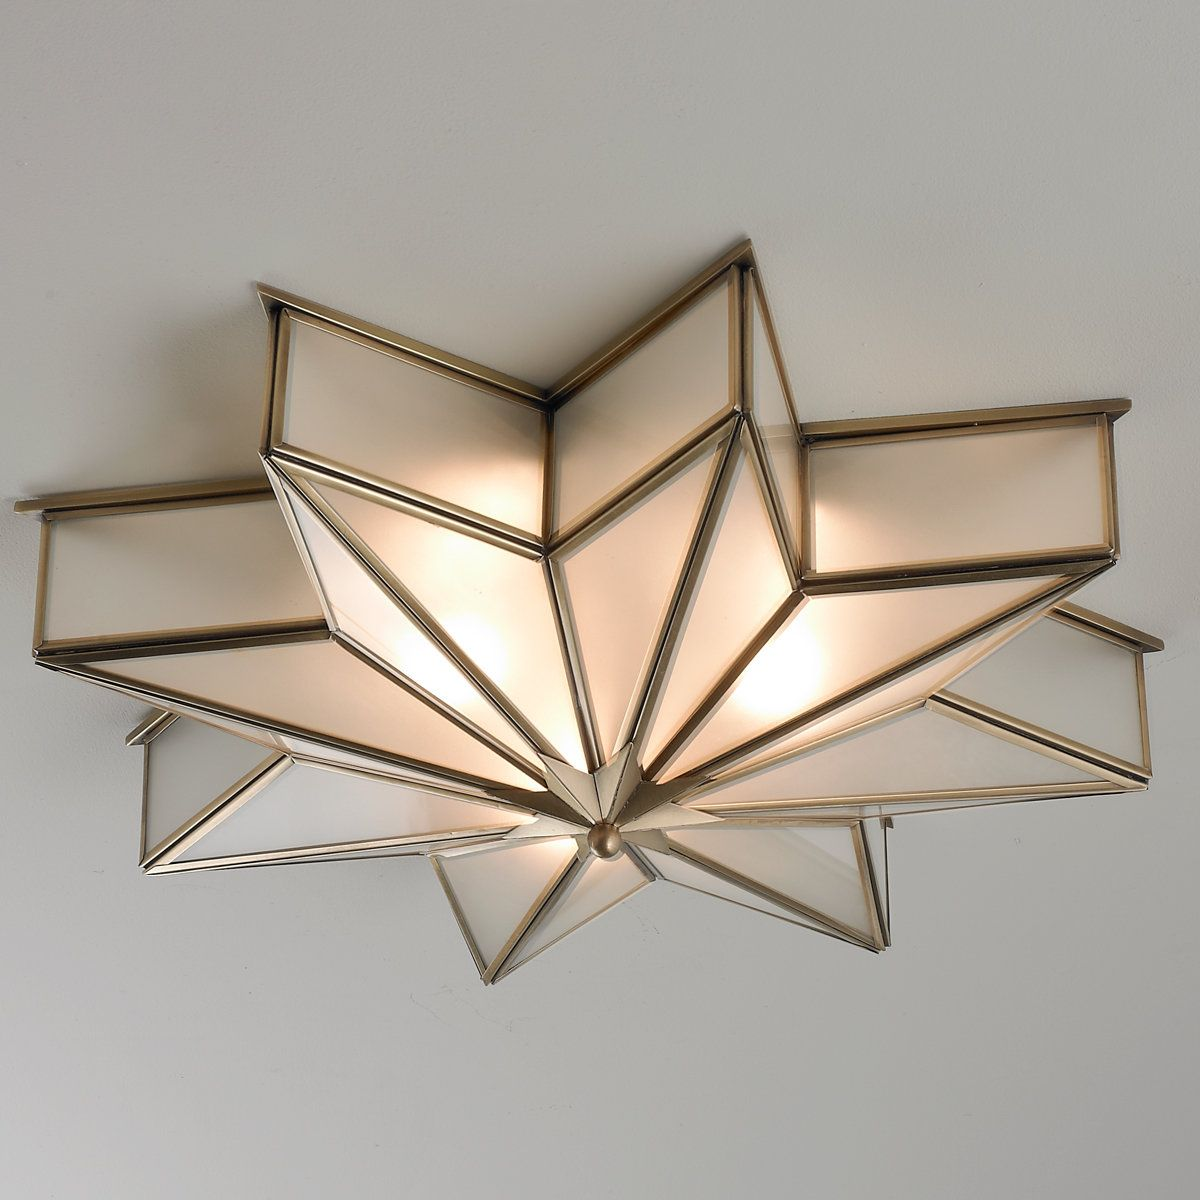 The magic of Hollywood stars comes alive in this 8 point star flush mount light in glare free frosted glass trimmed with satin brass.